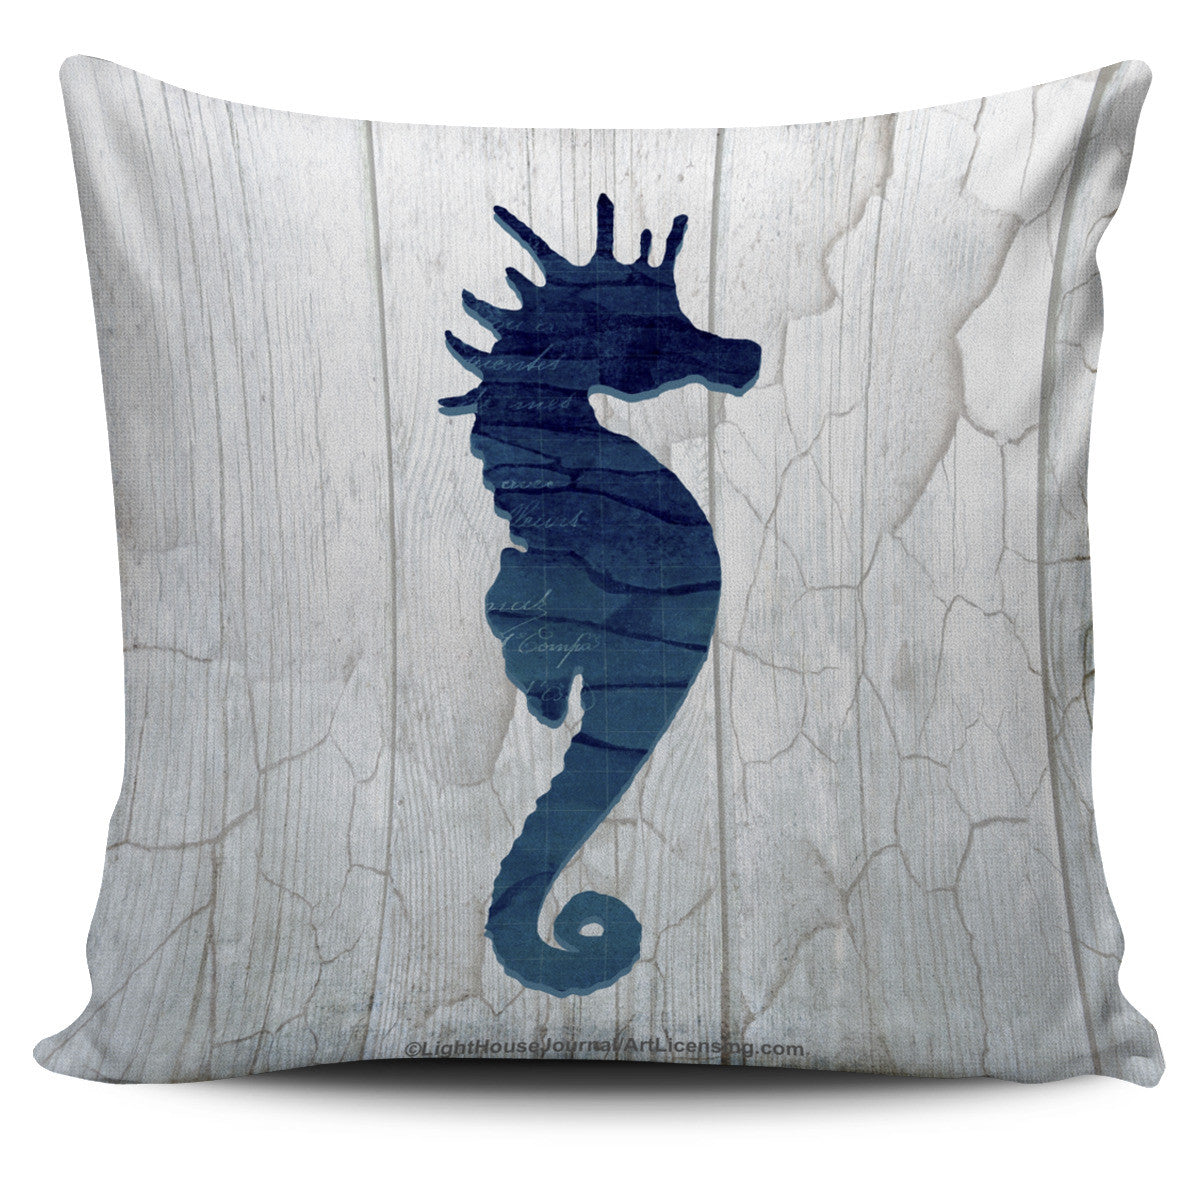 Classic Beach Cottage - Pillow Covers